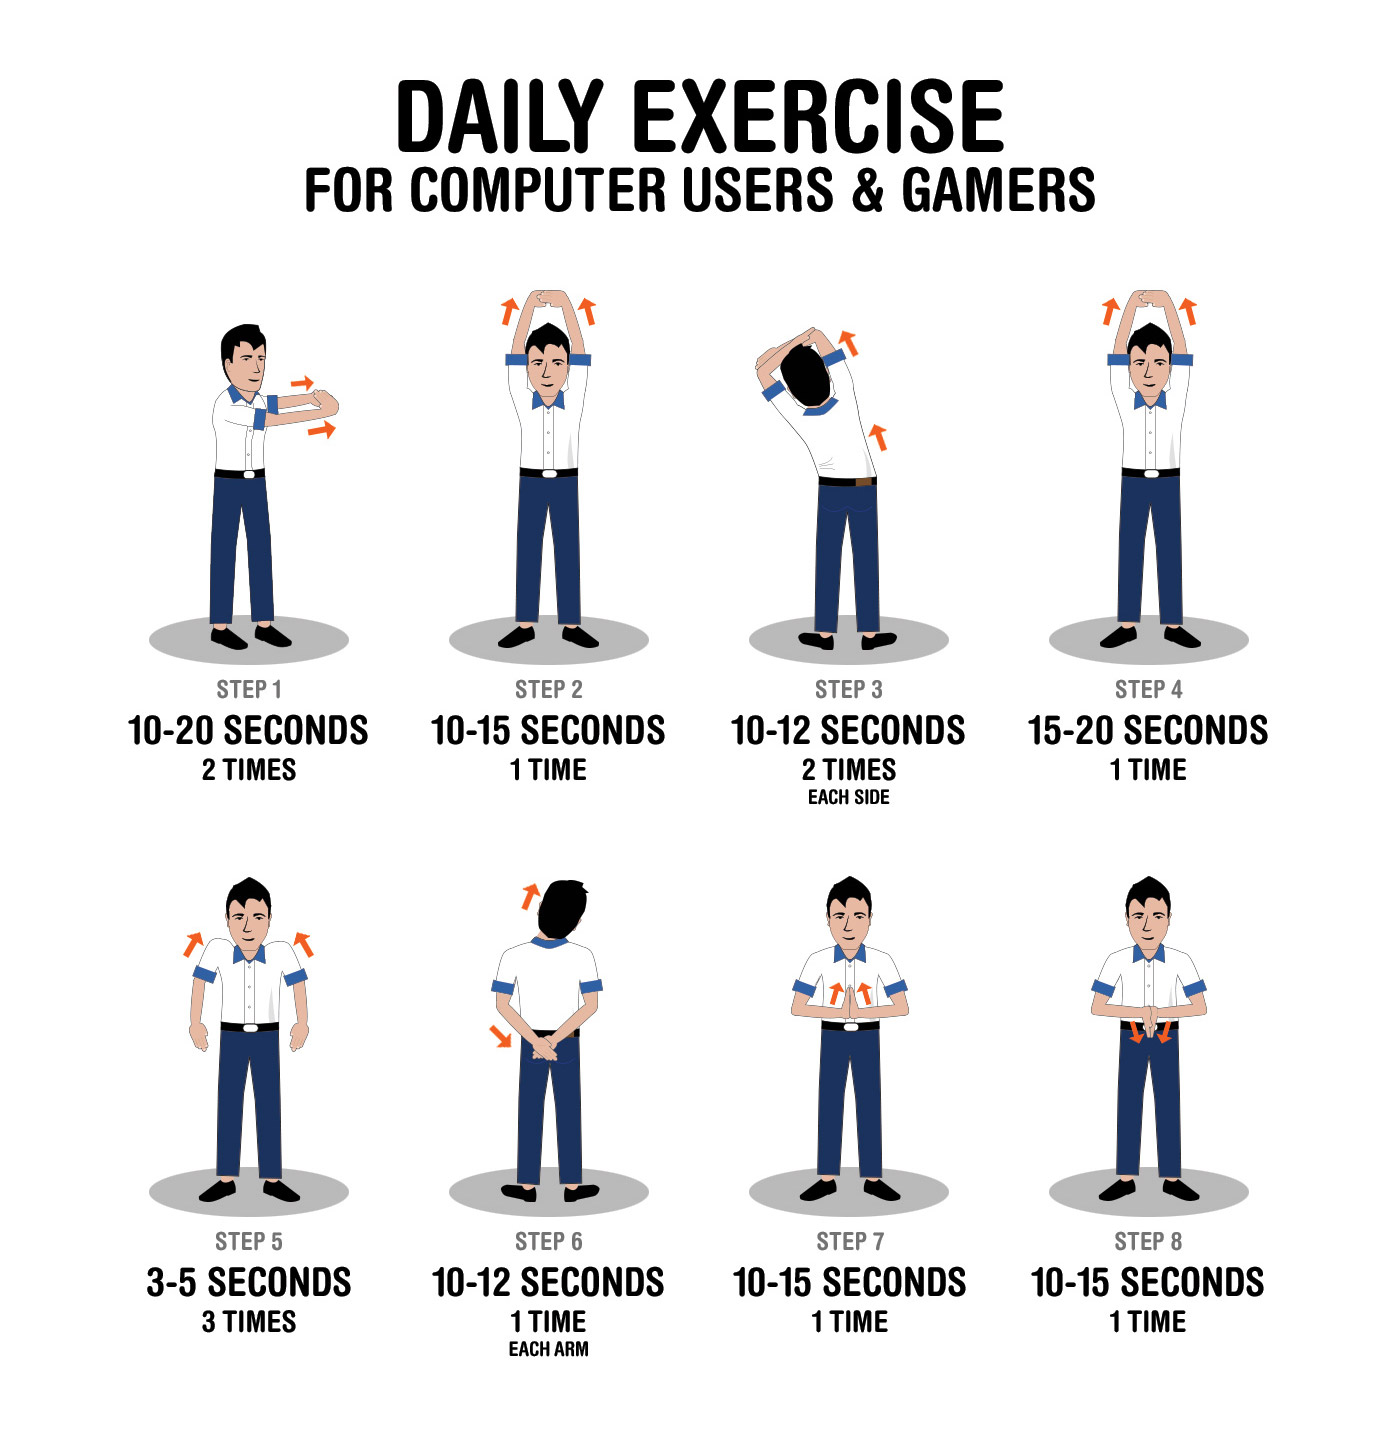 Daily Exercise Tips